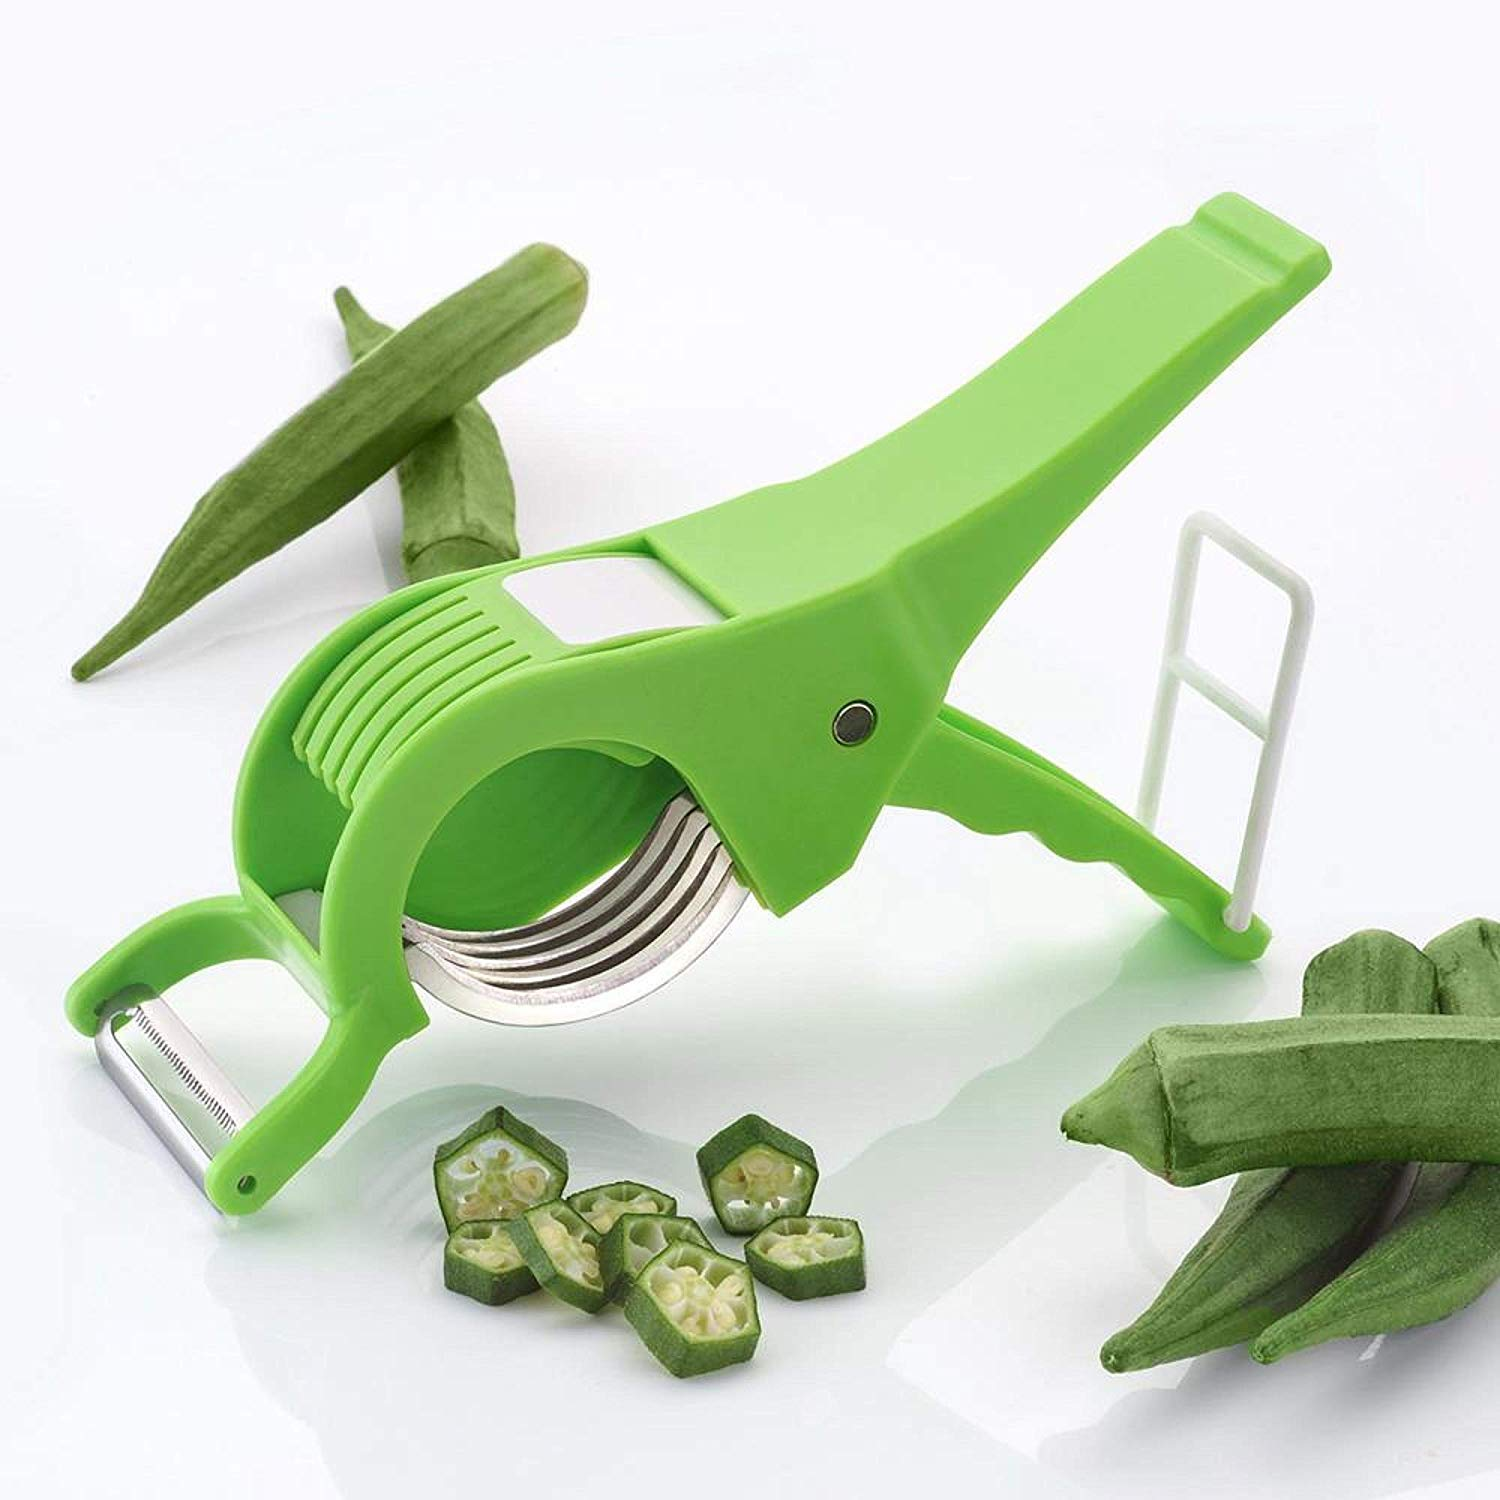 GOODNESS INTERNATIONAL Plastic Multi Cutter with Peeler for Vegetable and Fruits